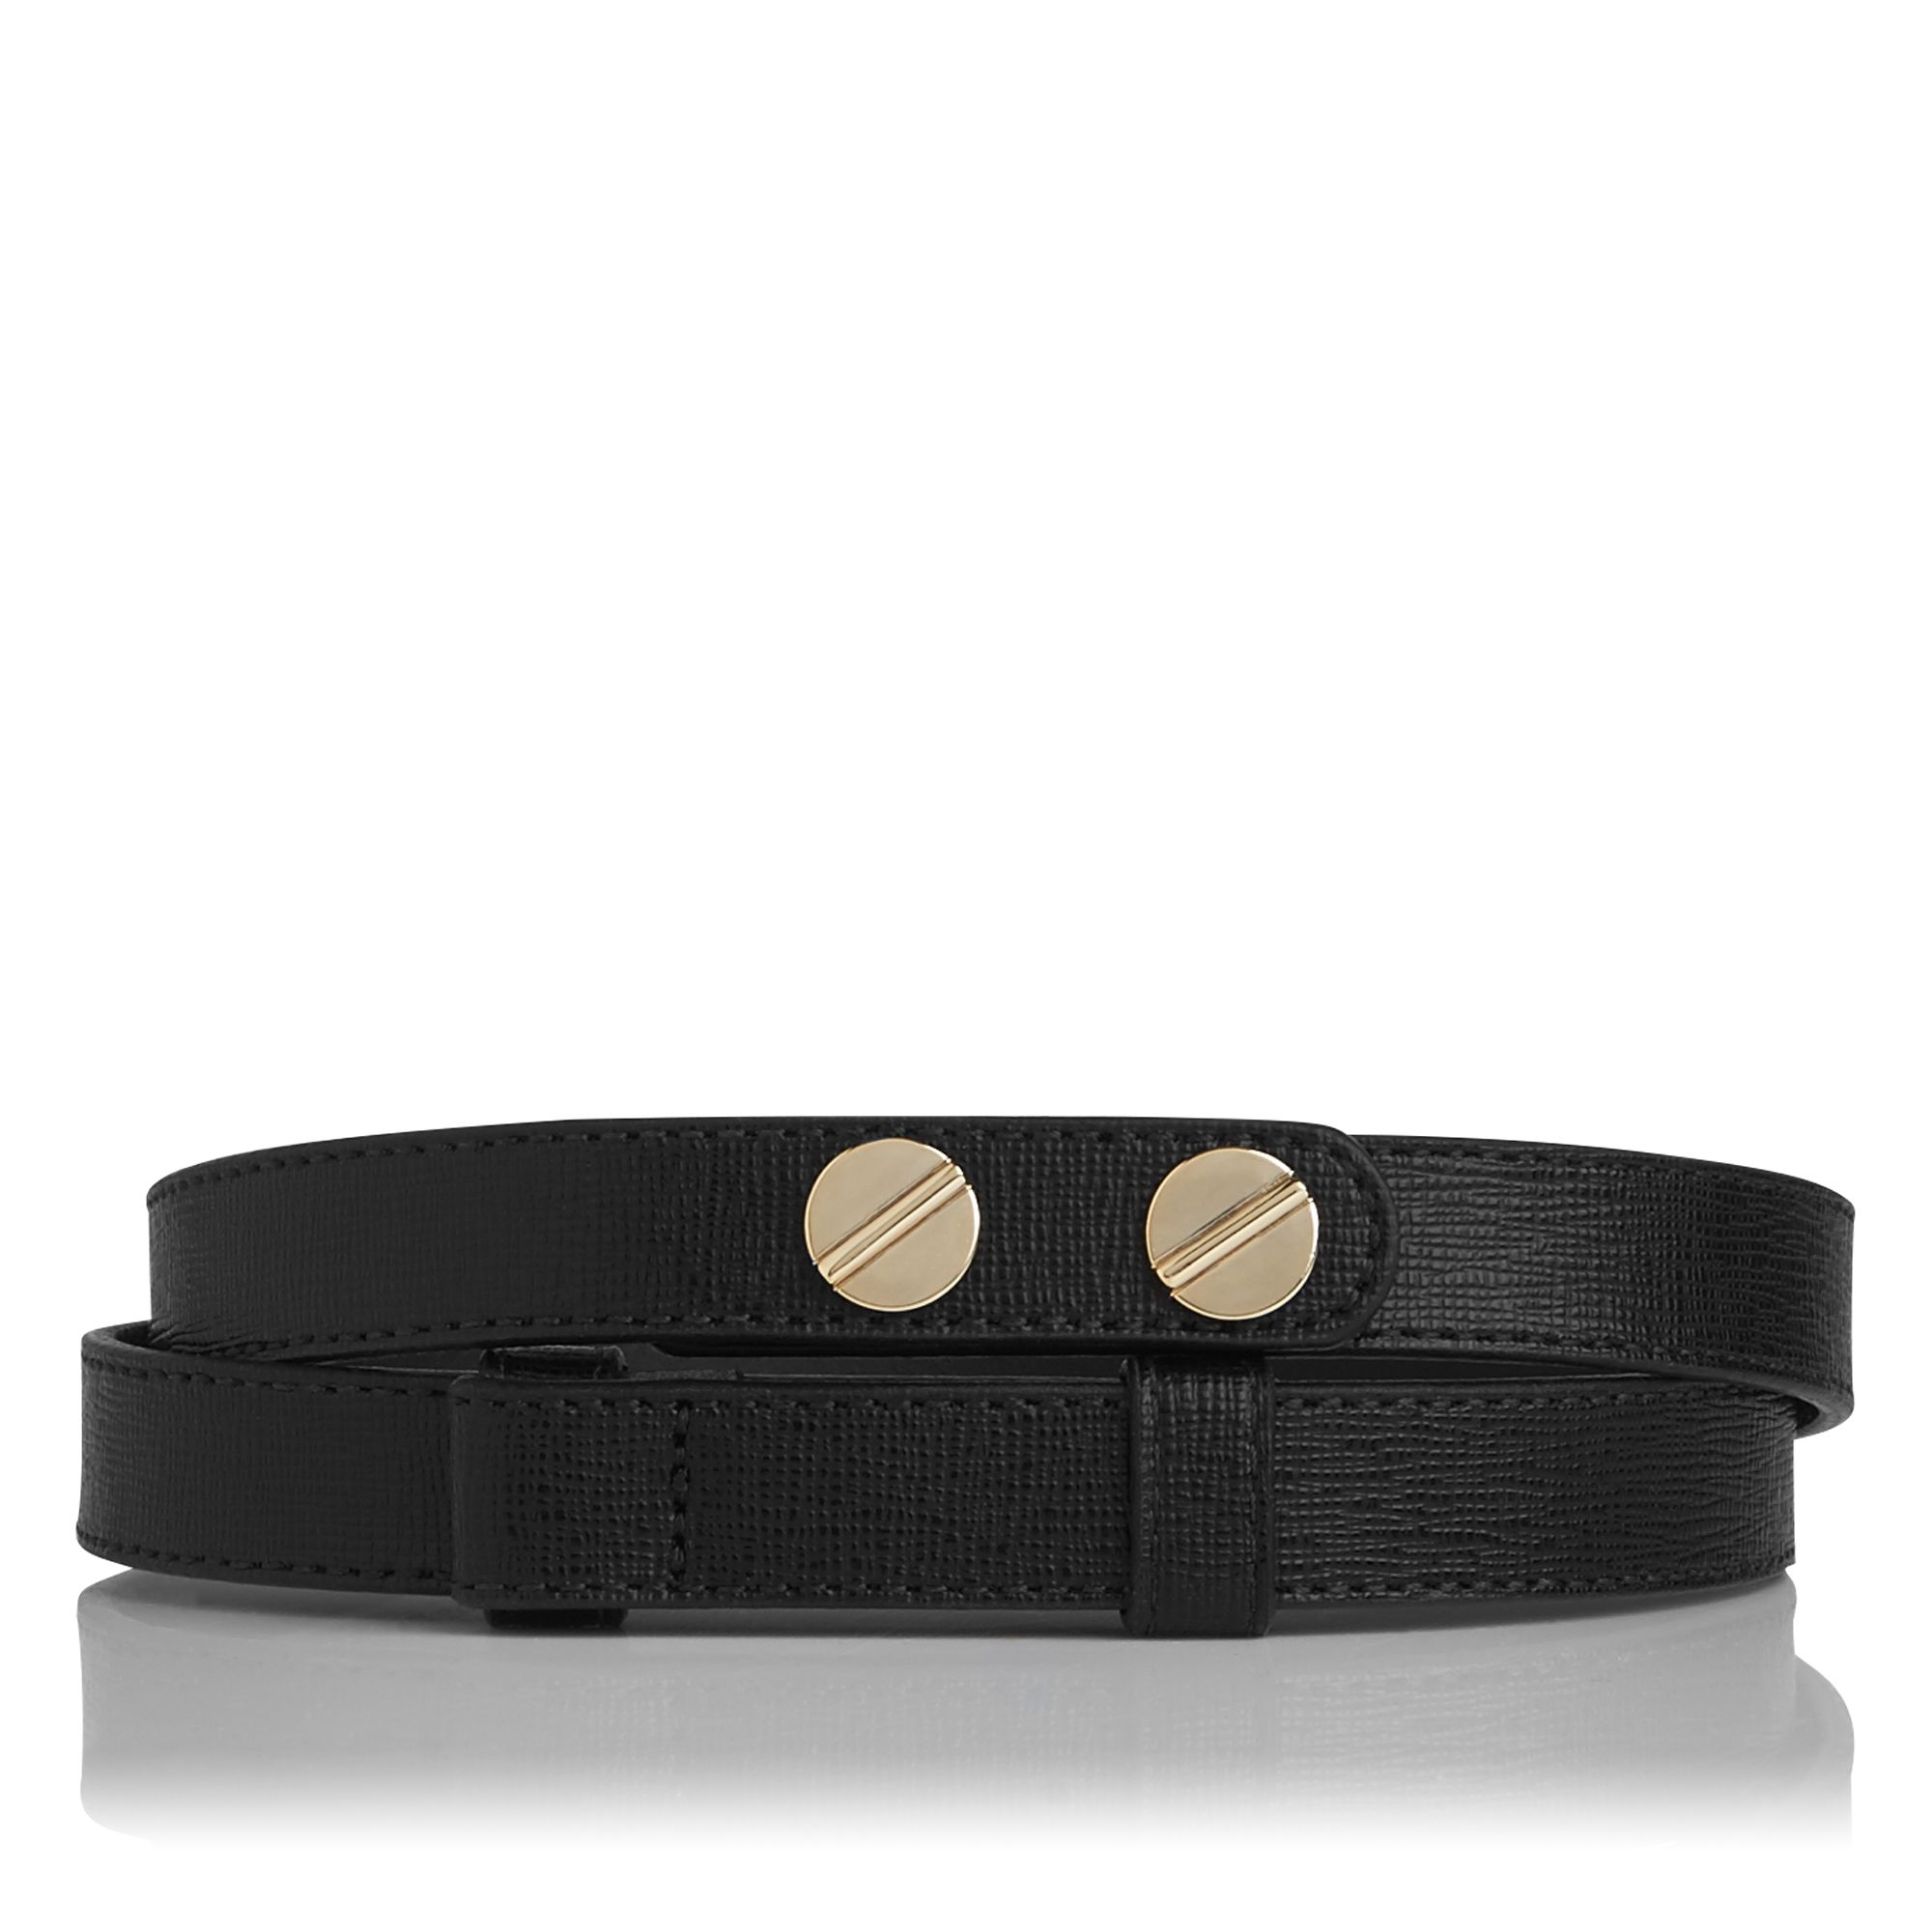 Click to view product details and reviews for Lkbennett Zahara Belts Black.